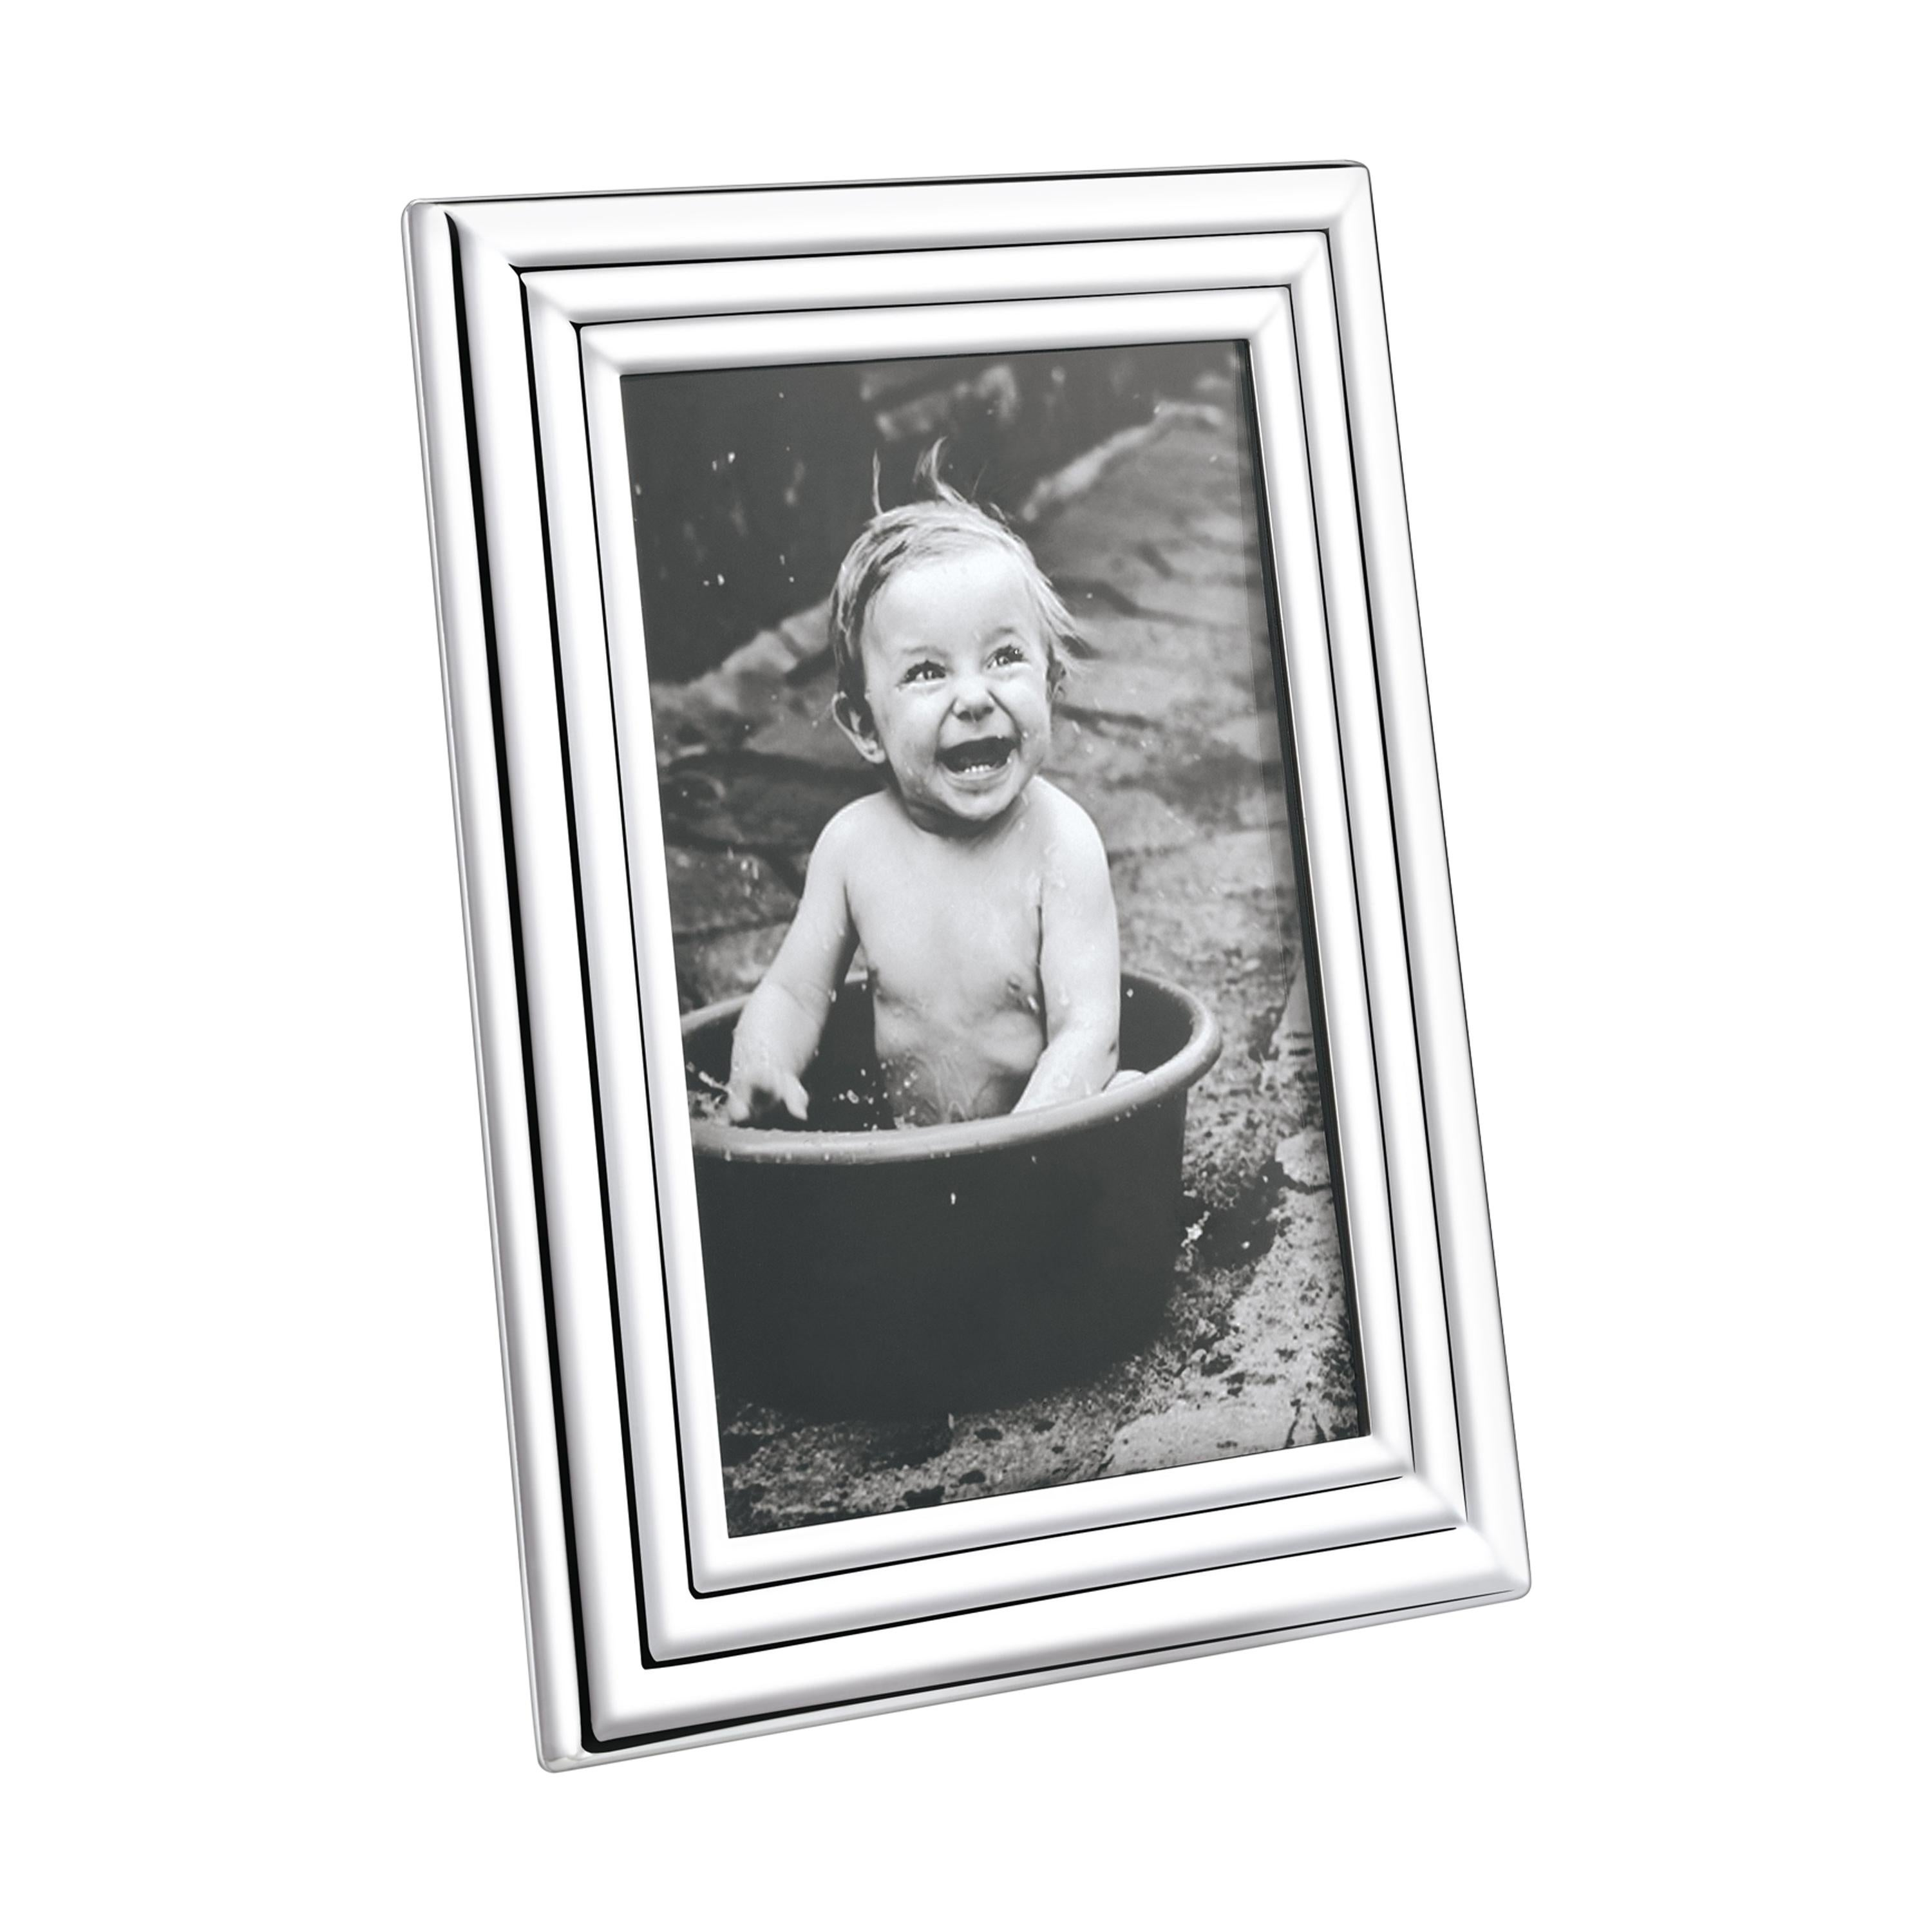 Georg Jensen Legacy Picture Frame in Stainless Steel by Philip Bro Ludvigsen